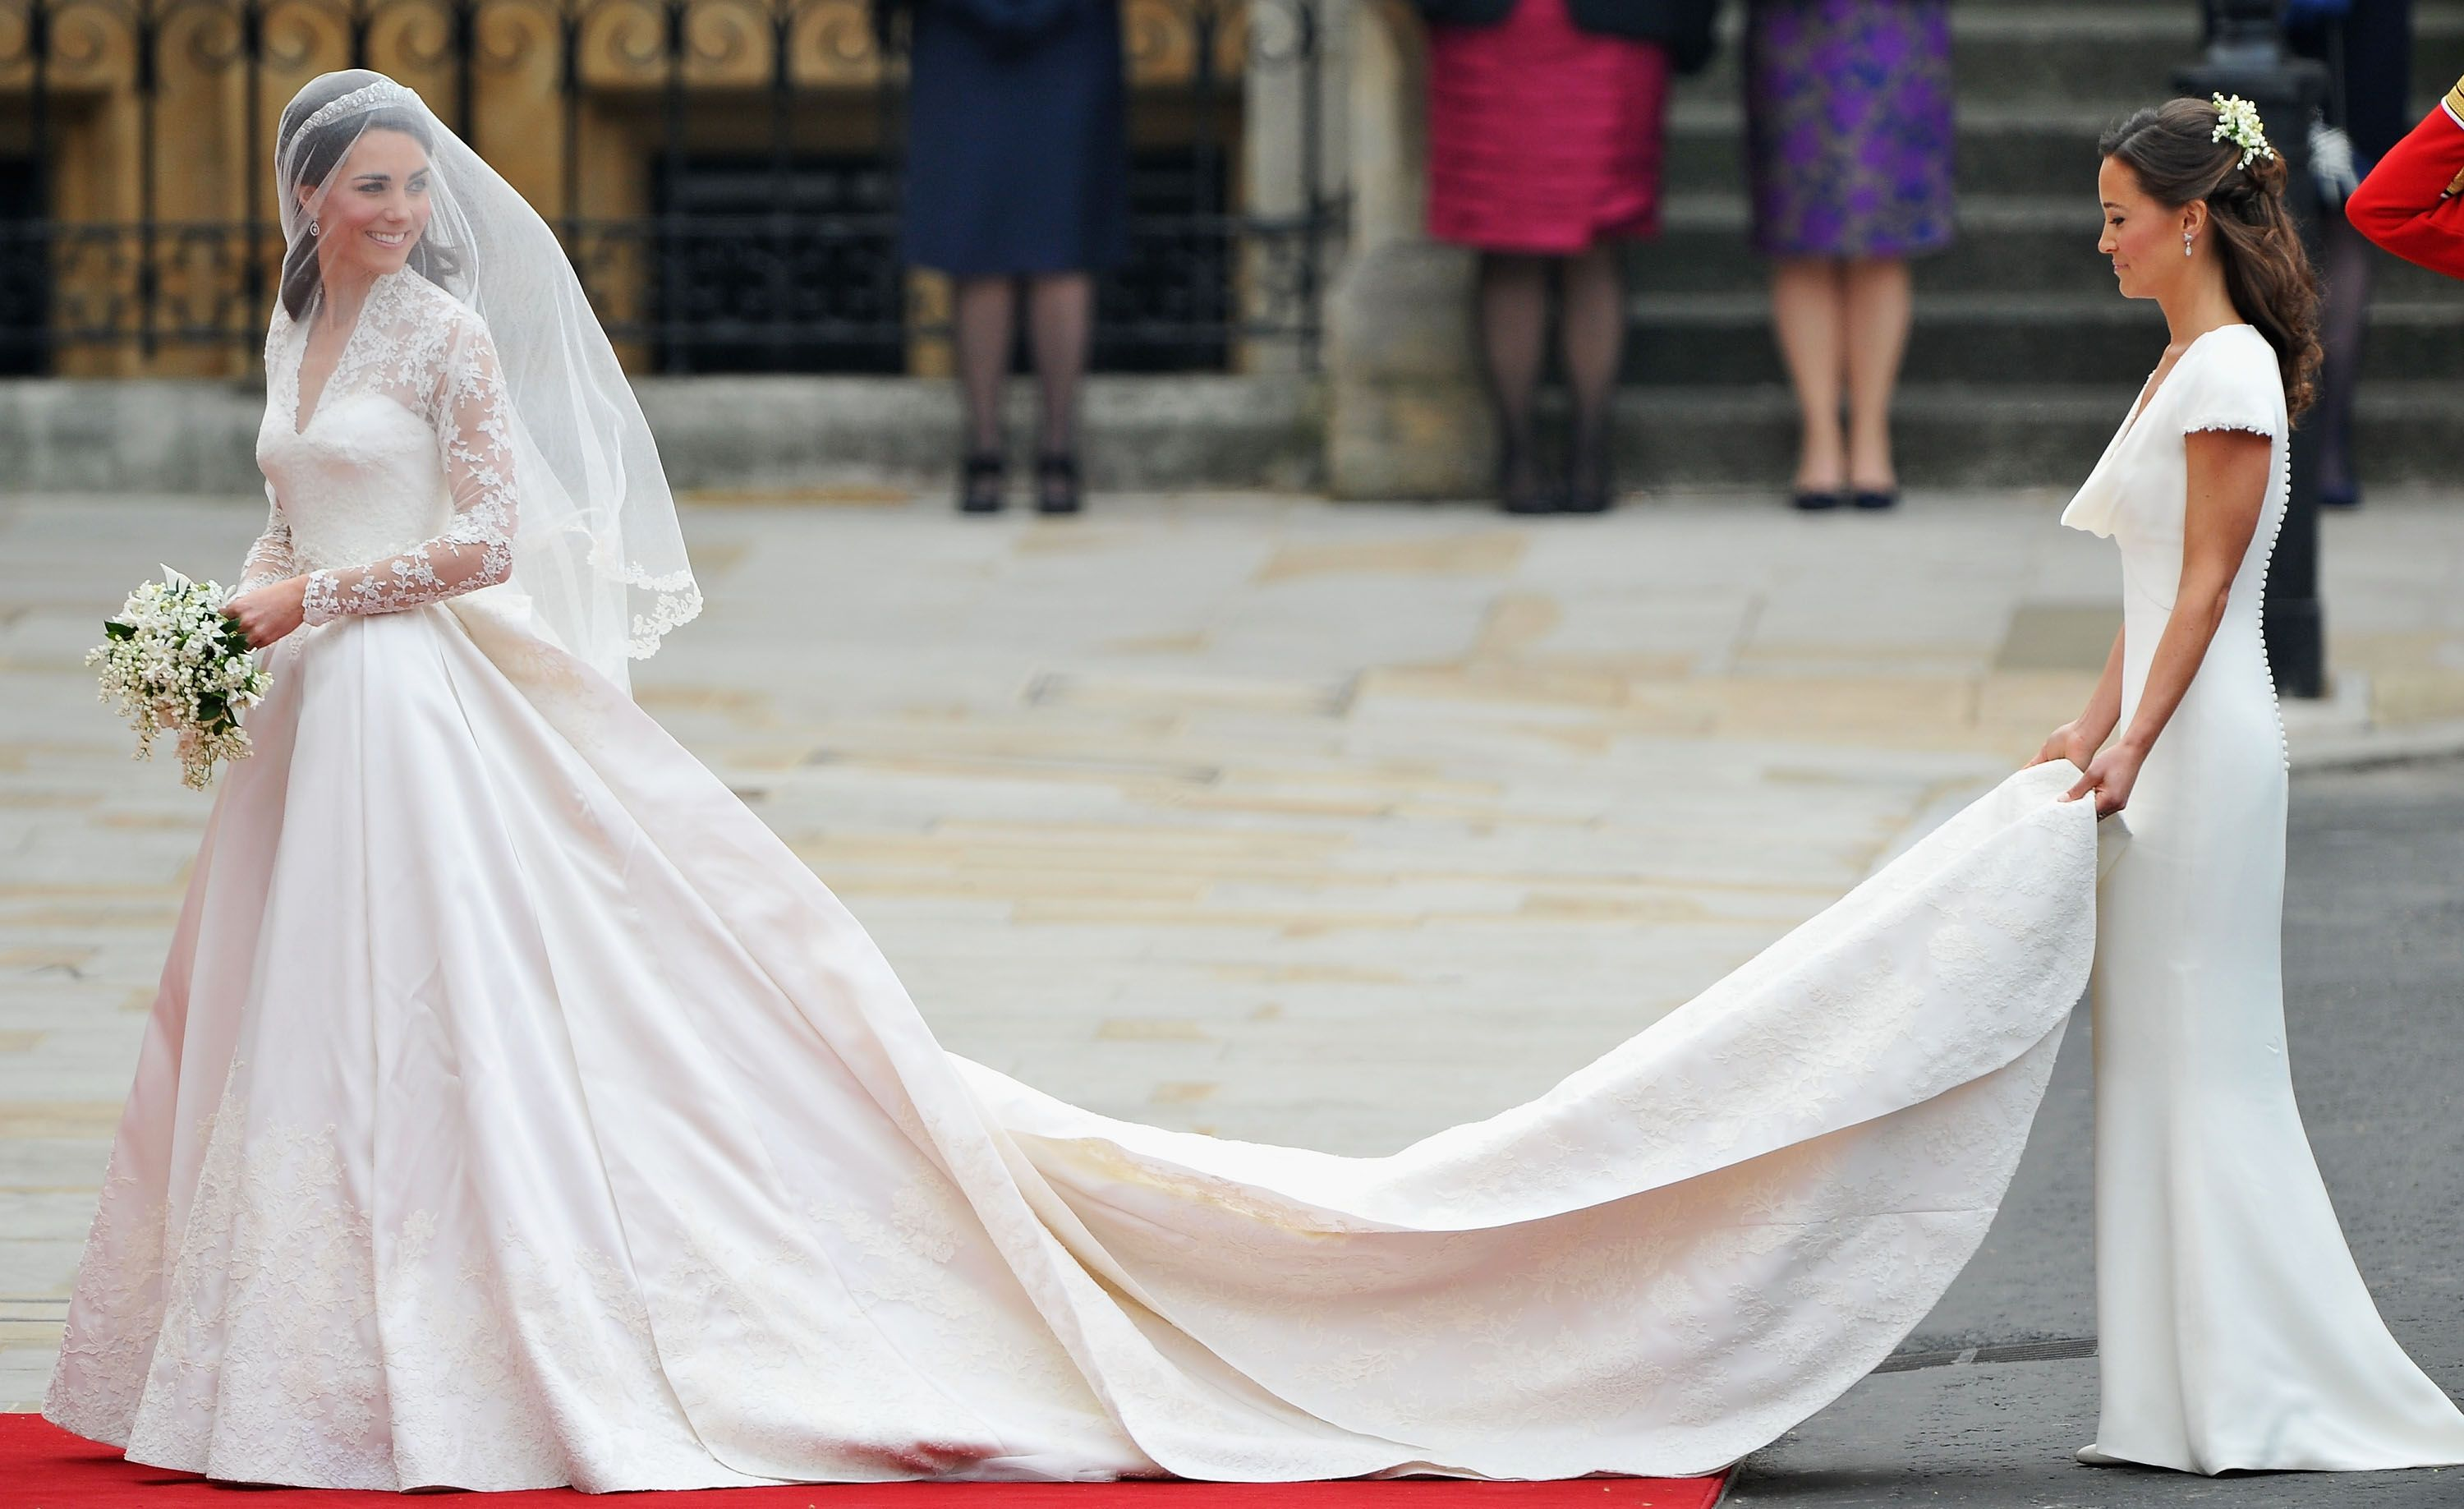 Celebrity Entertainment Pippa Middleton Wears Ivory Alexander Mcqueen To The Royal Wedding Expensive Wedding Dress Kate Middleton Wedding Dress Royal Wedding Dress